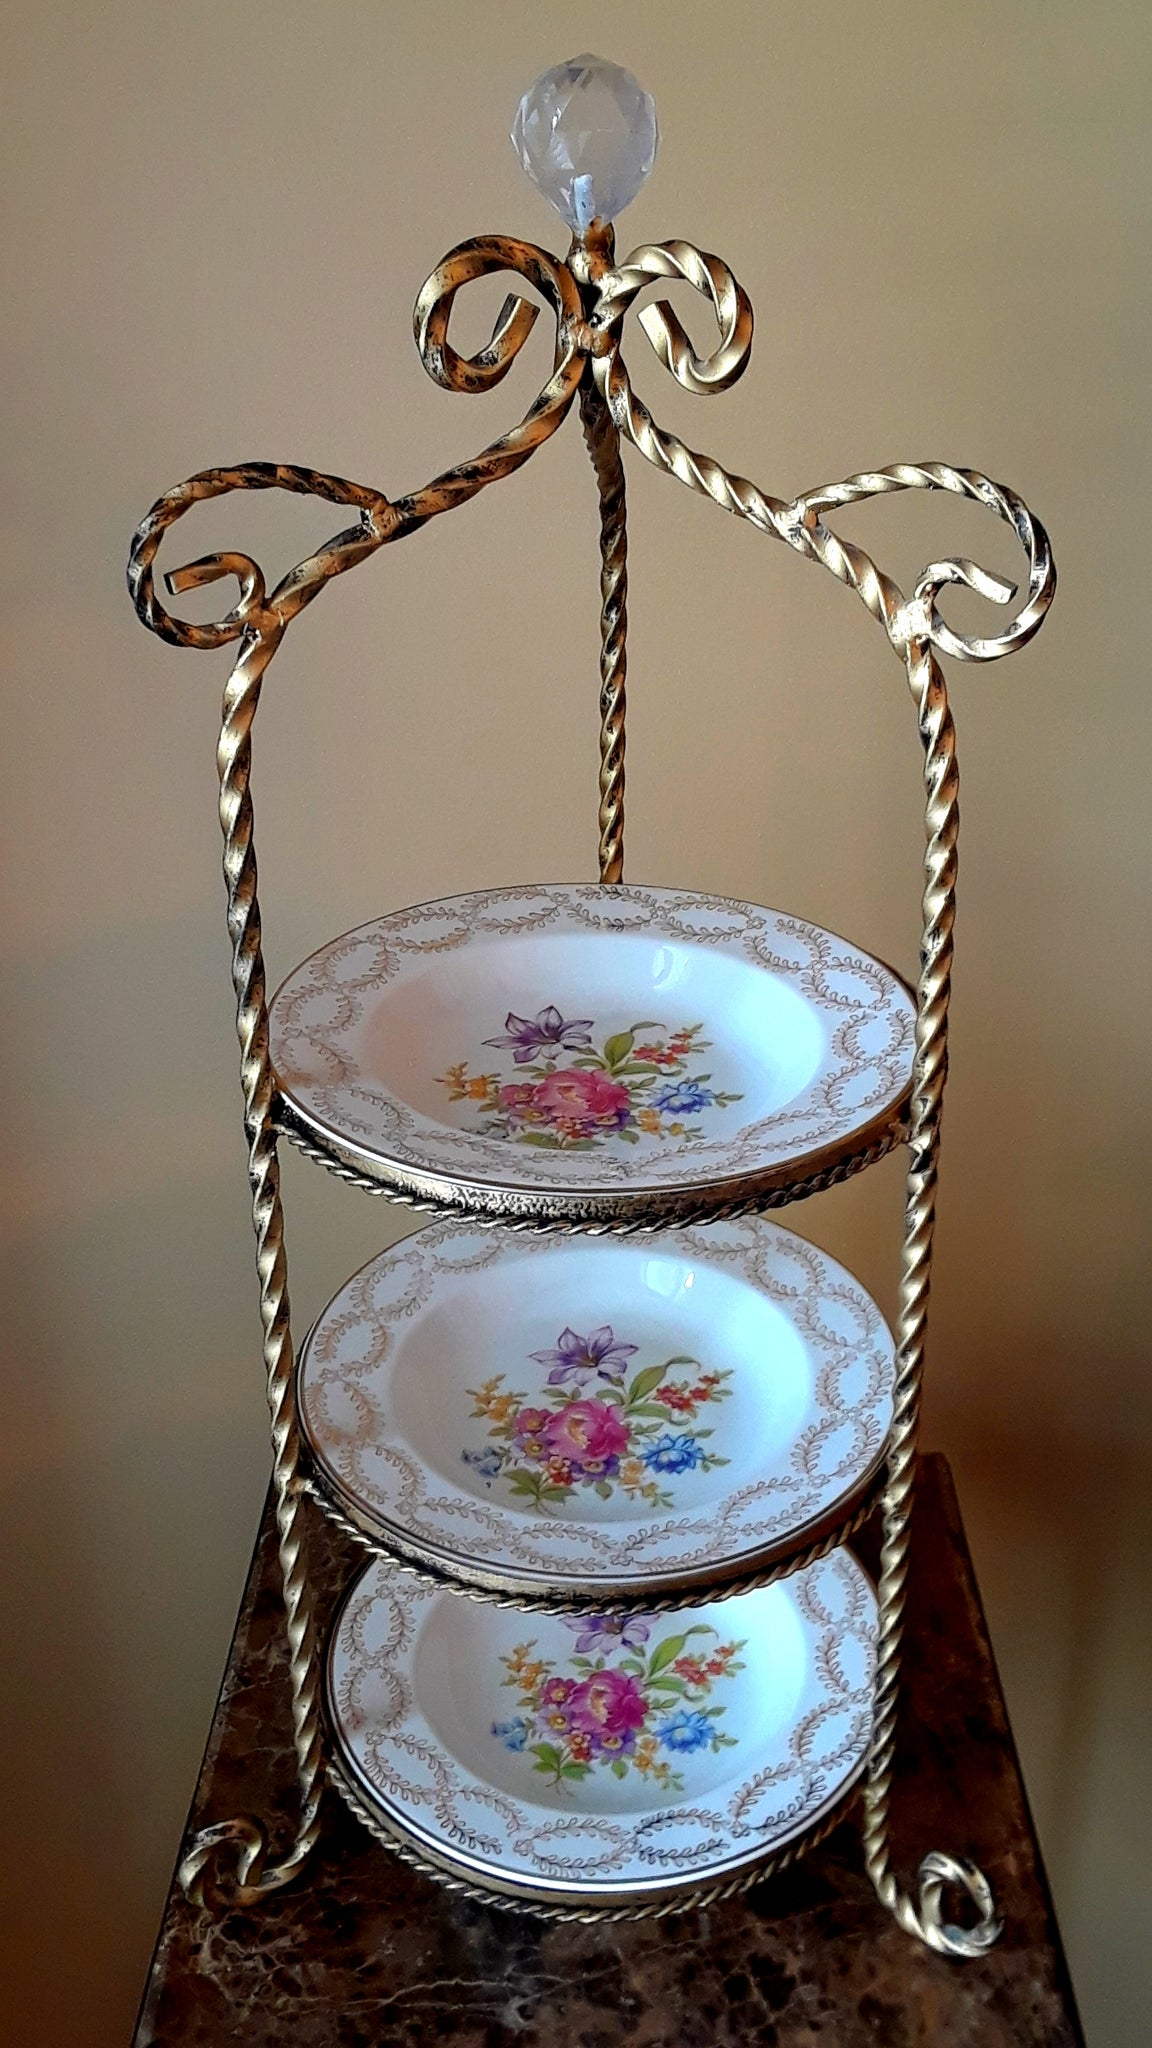 3-Tier Porcelain Bowl Stand